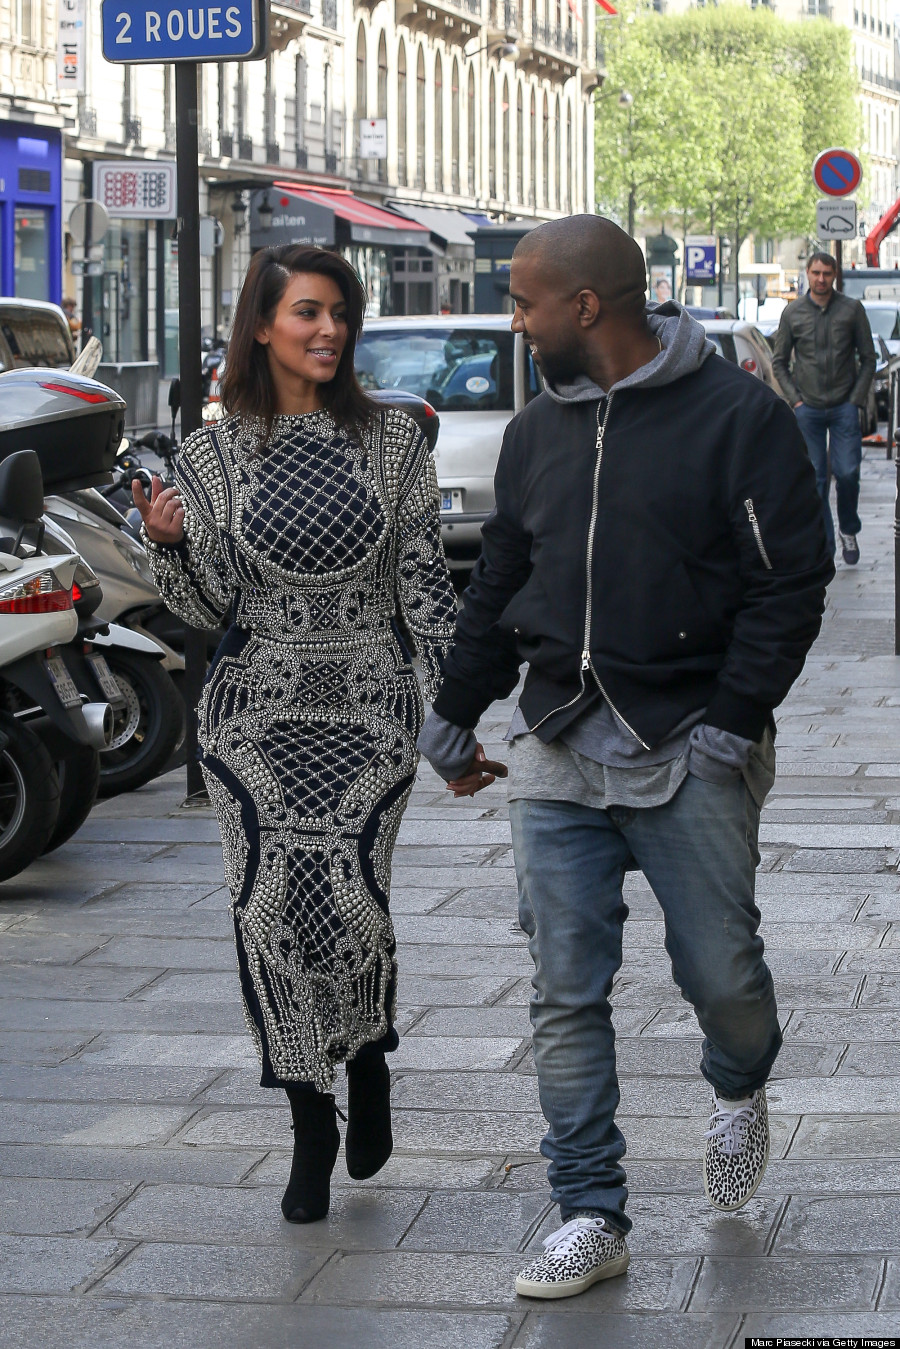 kim kardashian wears pearlencrusted dress in paris as you do